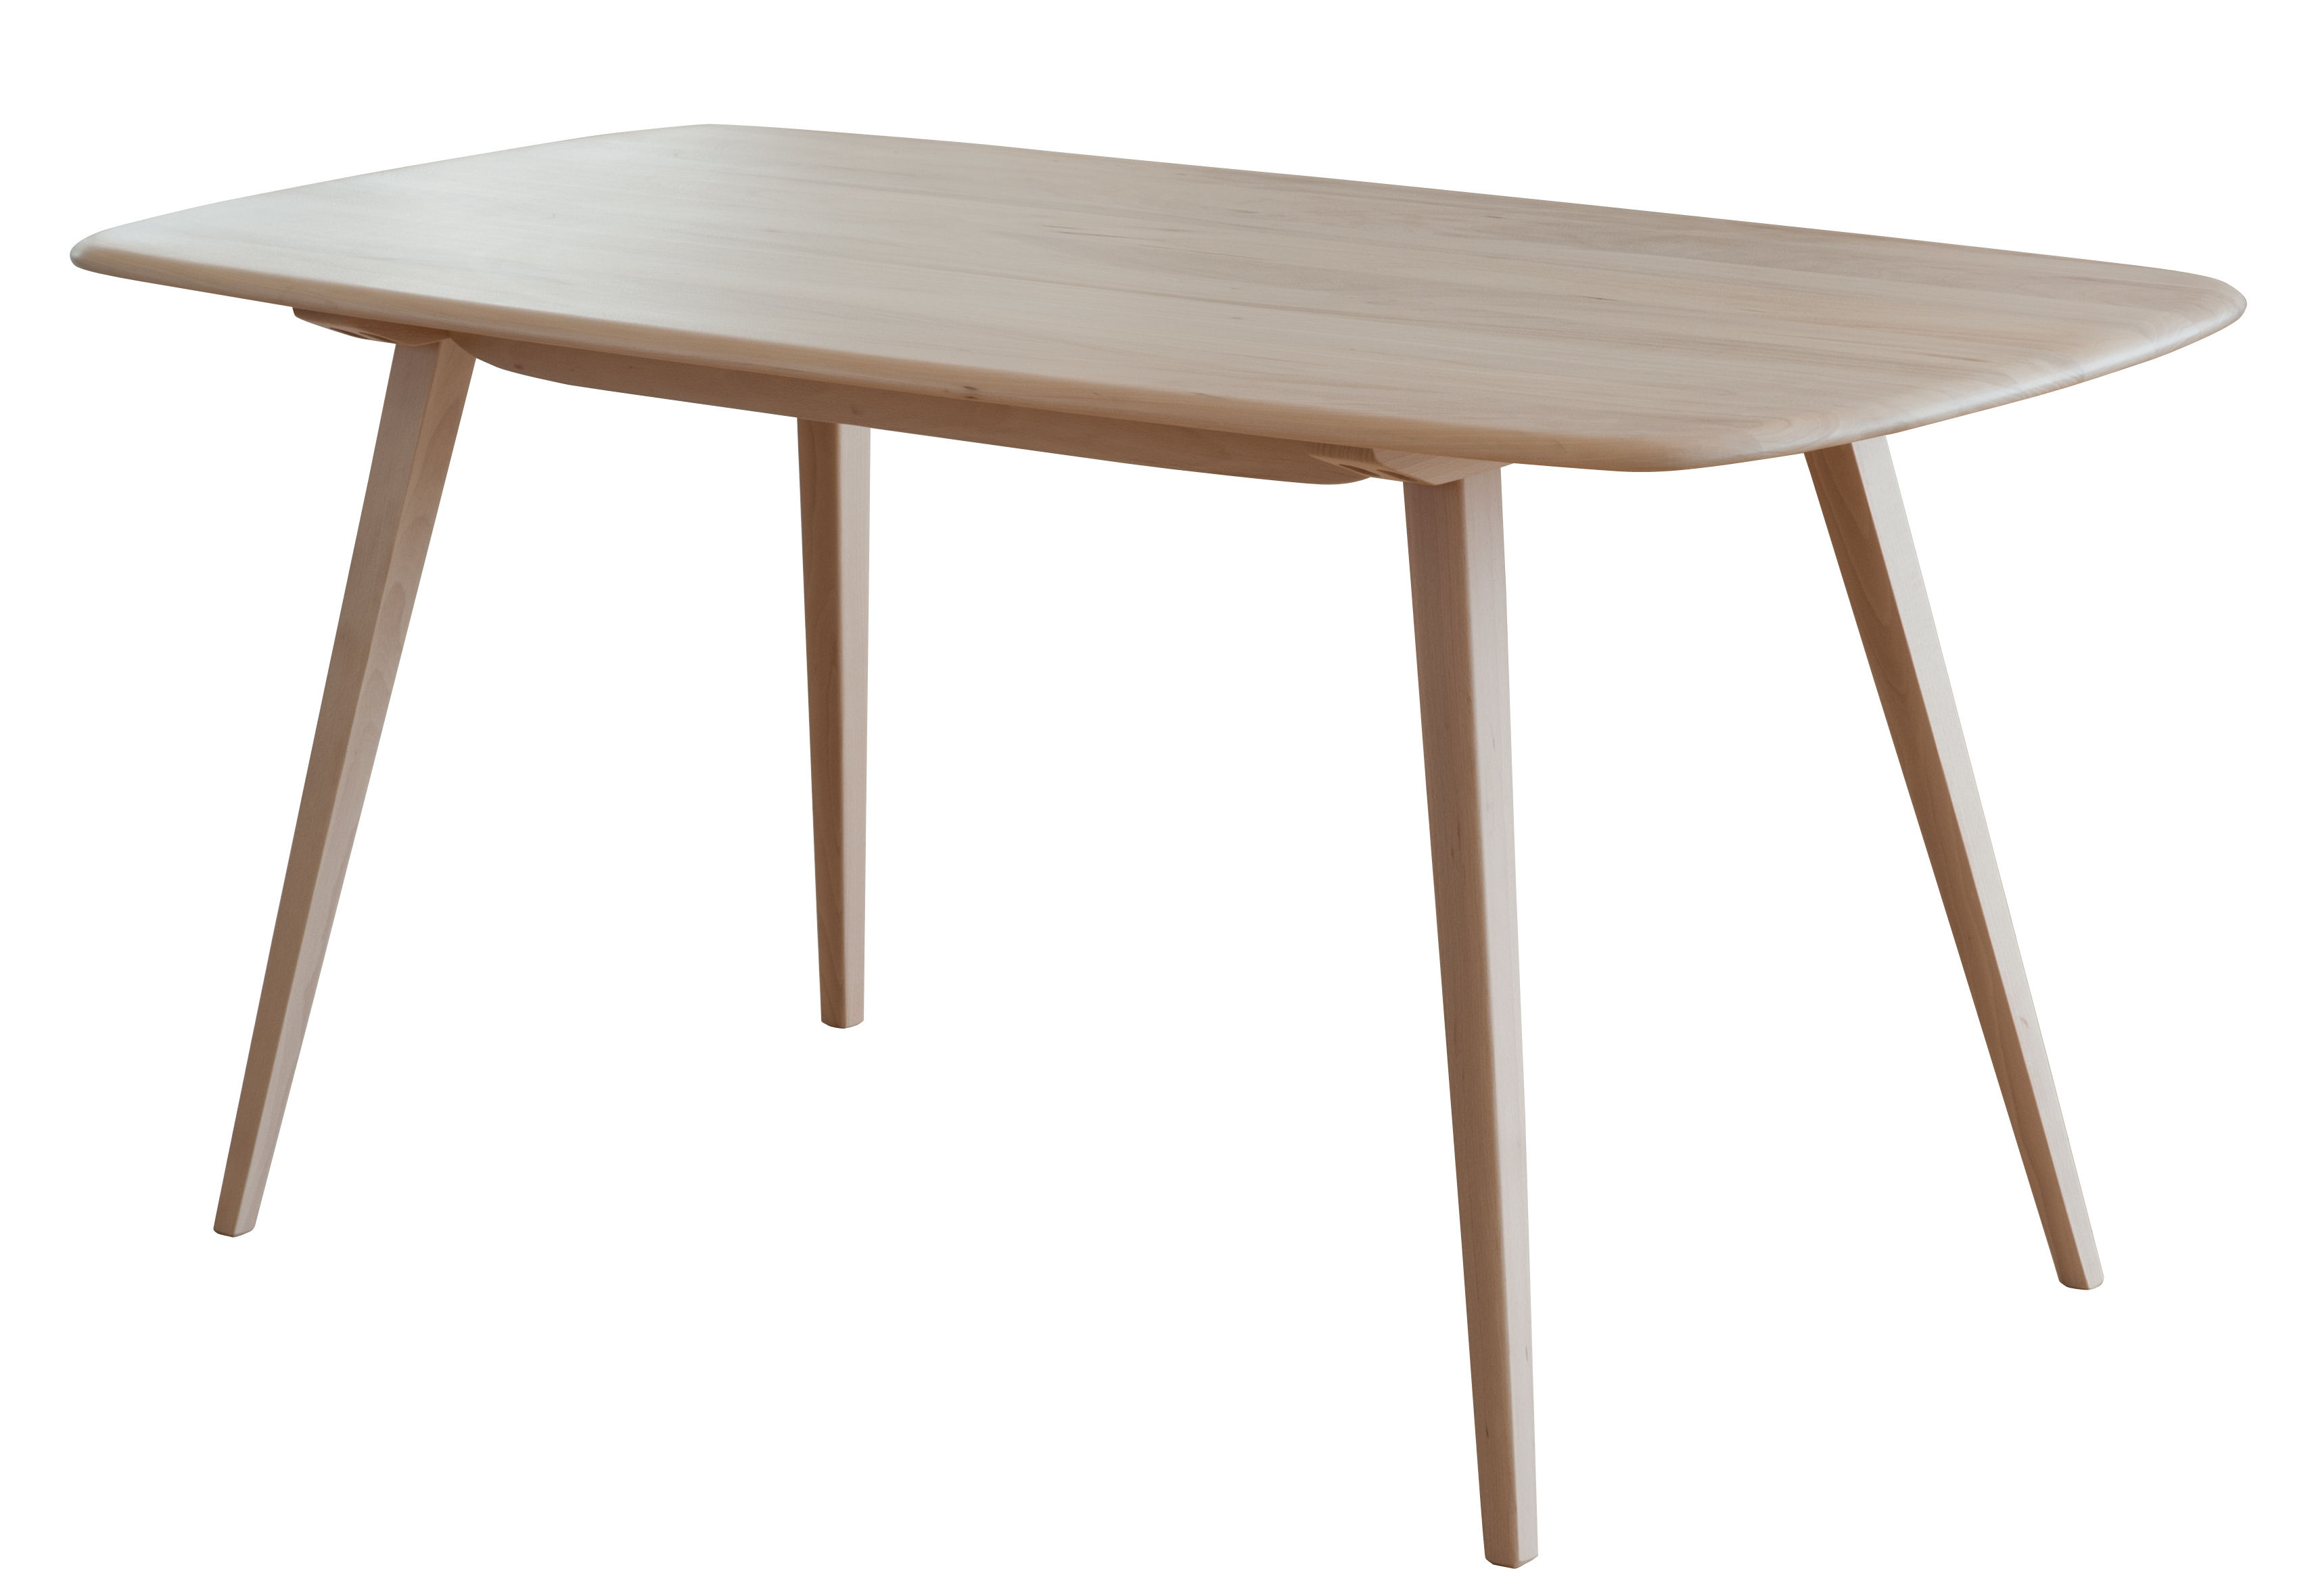 Trends - Take your seat! - Plank Rectangular table - 152 x 76 cm / Reissue 1950' by Ercol - Natural wood - Solid ash, Solid elm